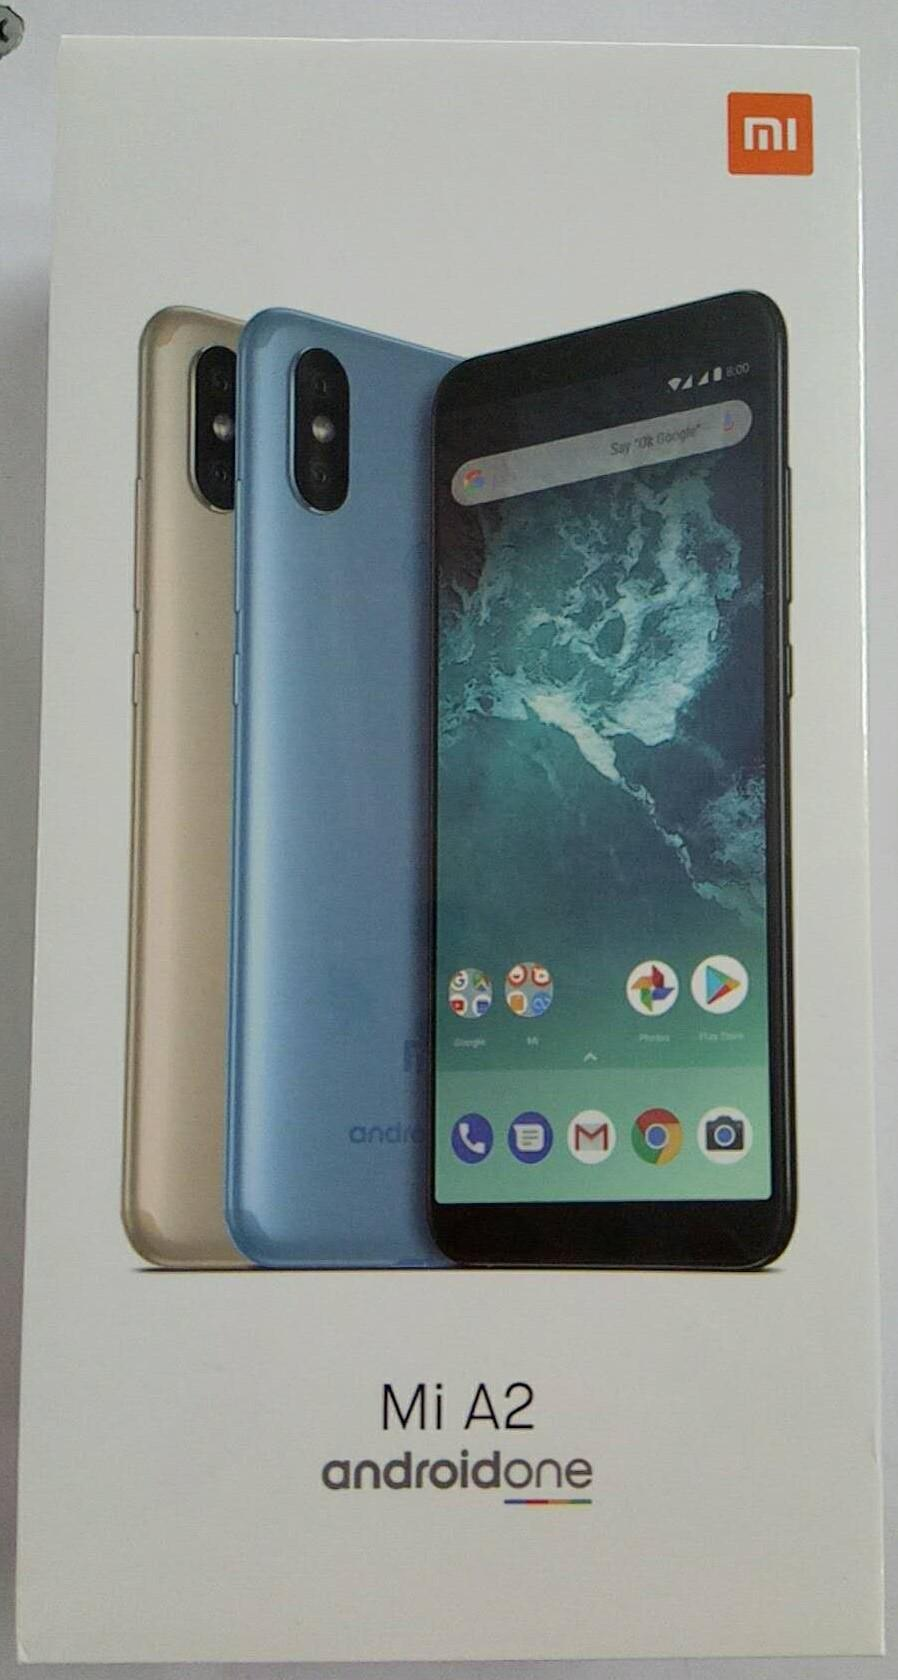 [Ready_Stocks] Xiaomi Mi A2 AndroidOne OS 32GB/4GB - Brand New Export Set with Warranty